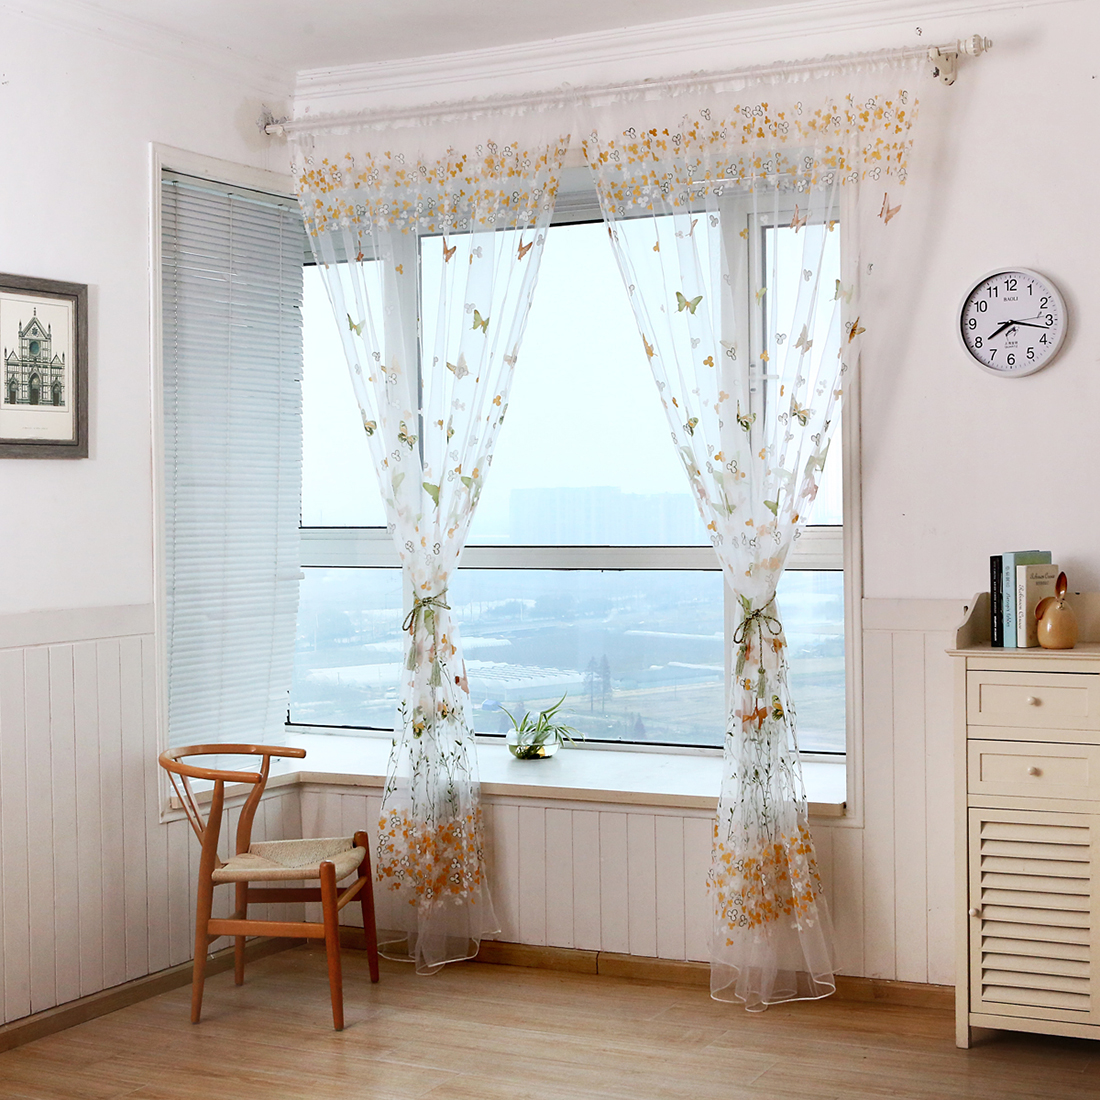 Room floral tulle window curtain drape panel decal scarf val.